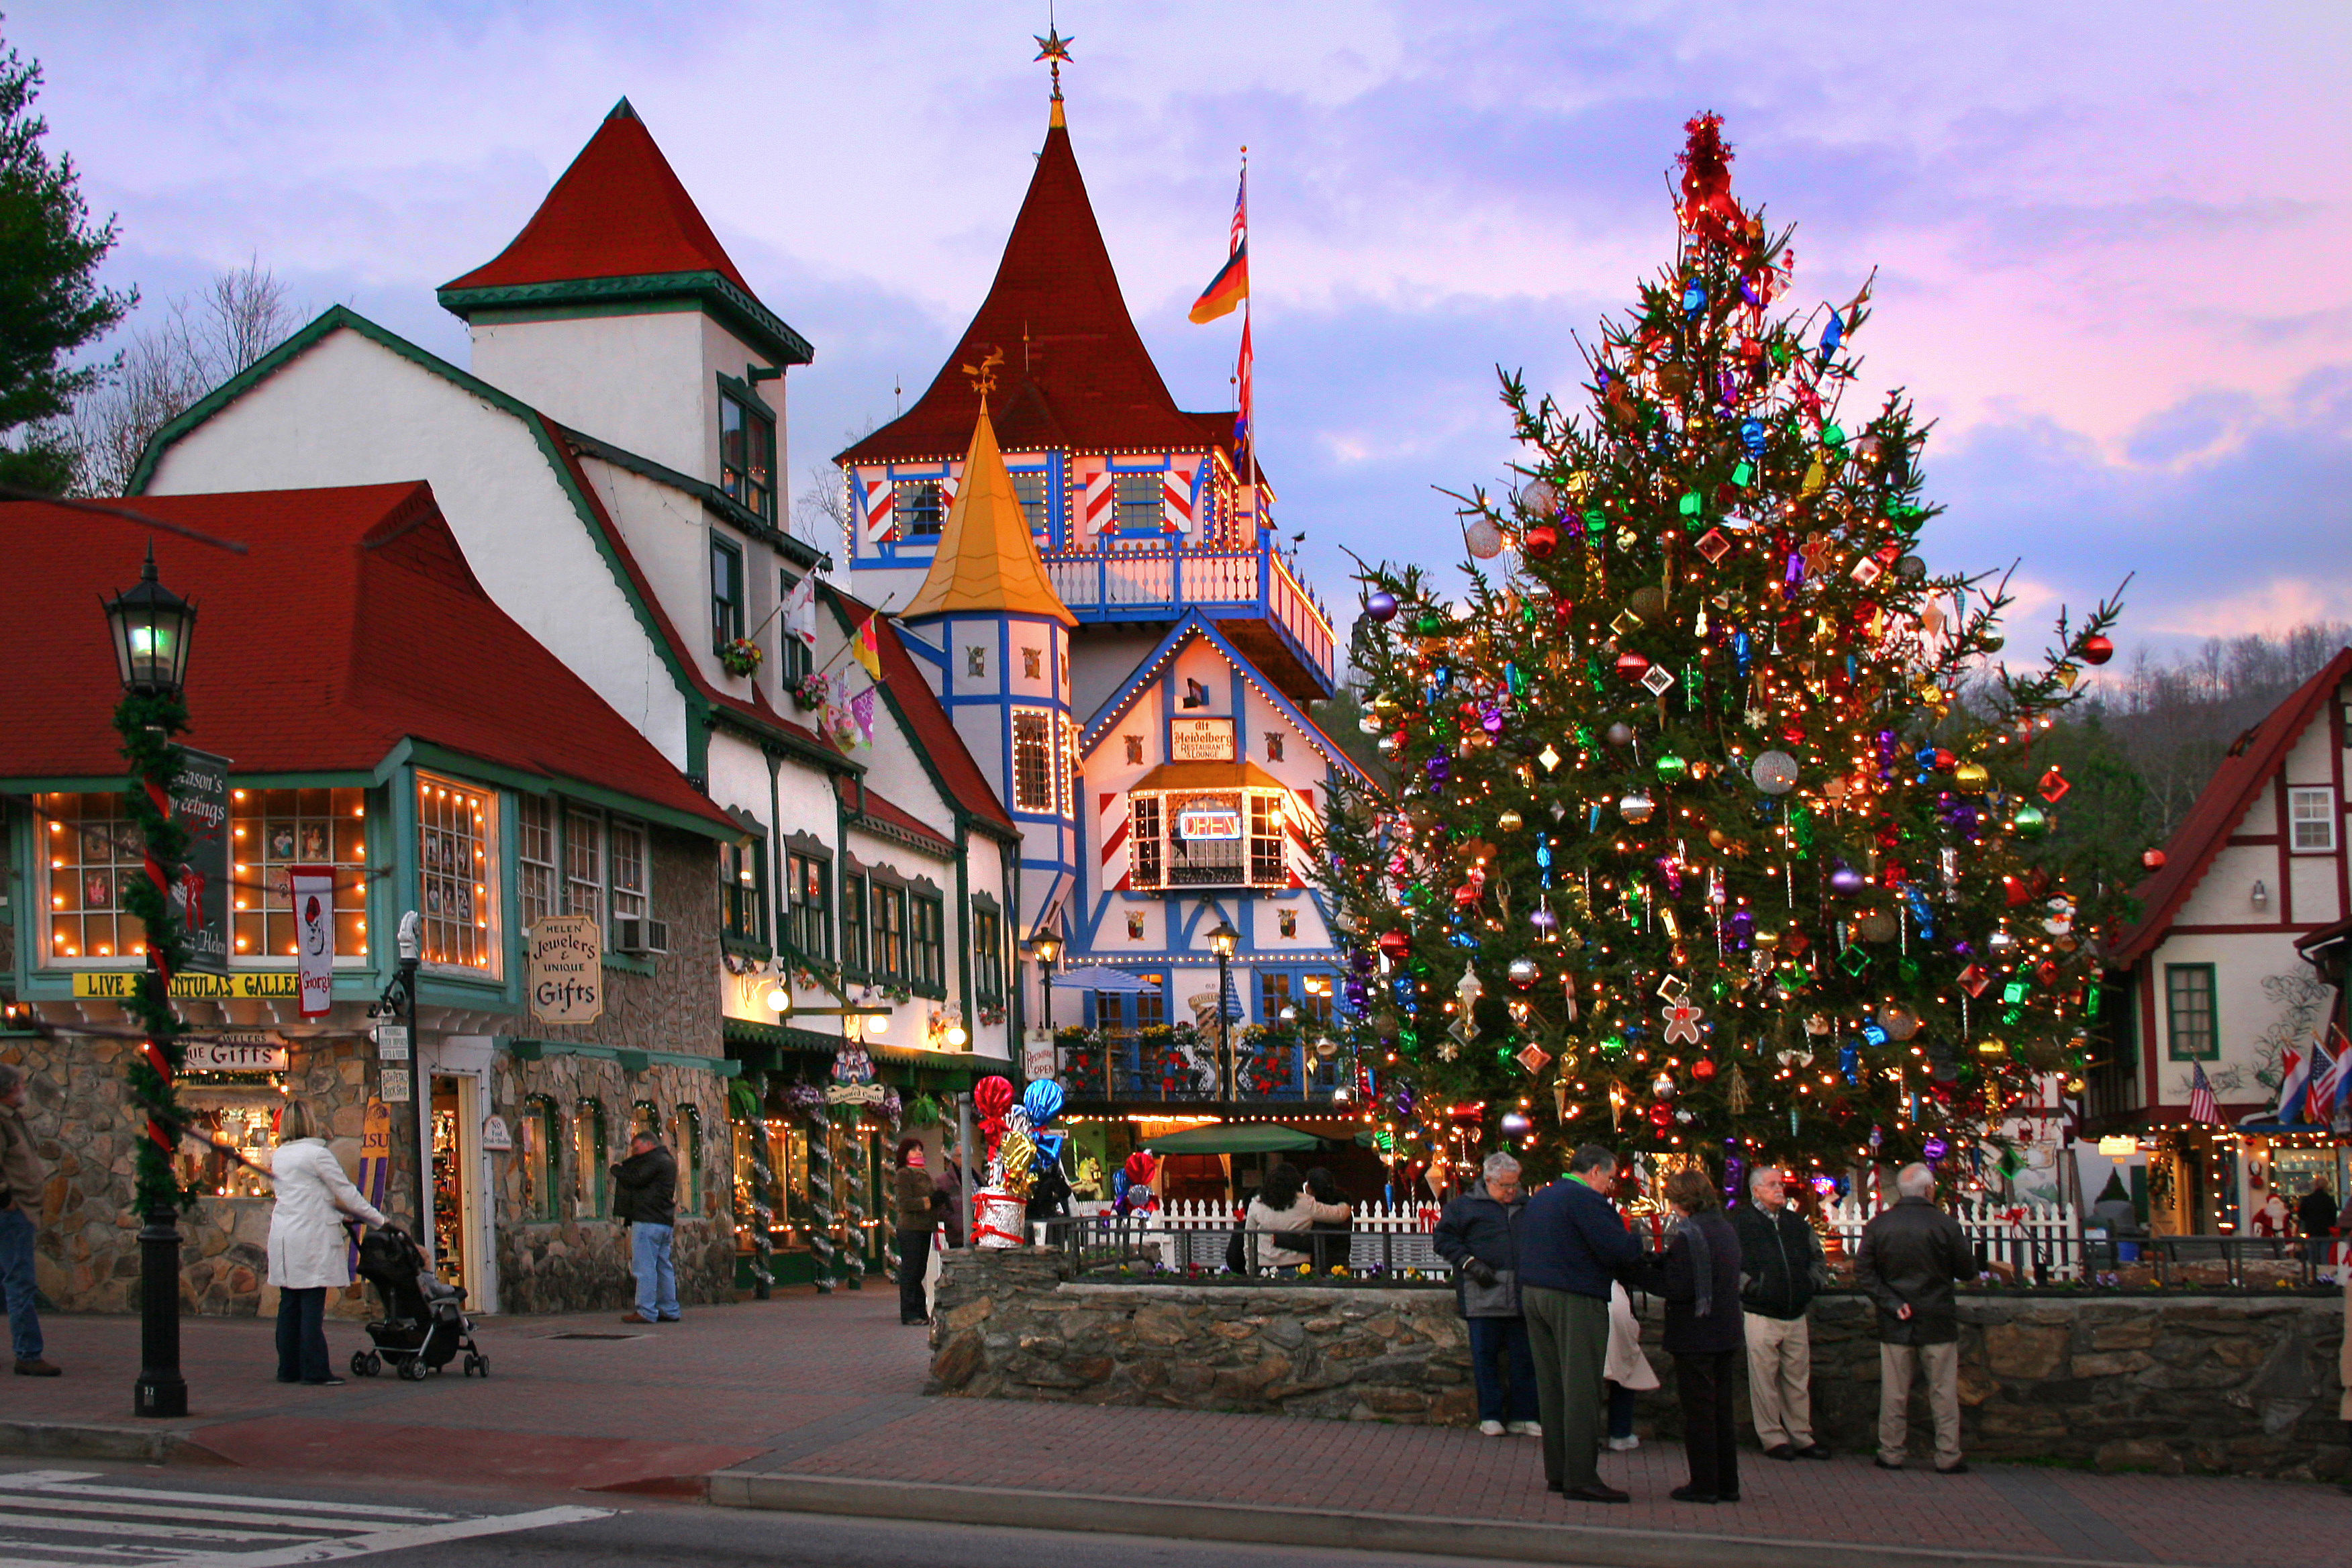 Ever Heard of a Christkindlmarkt?